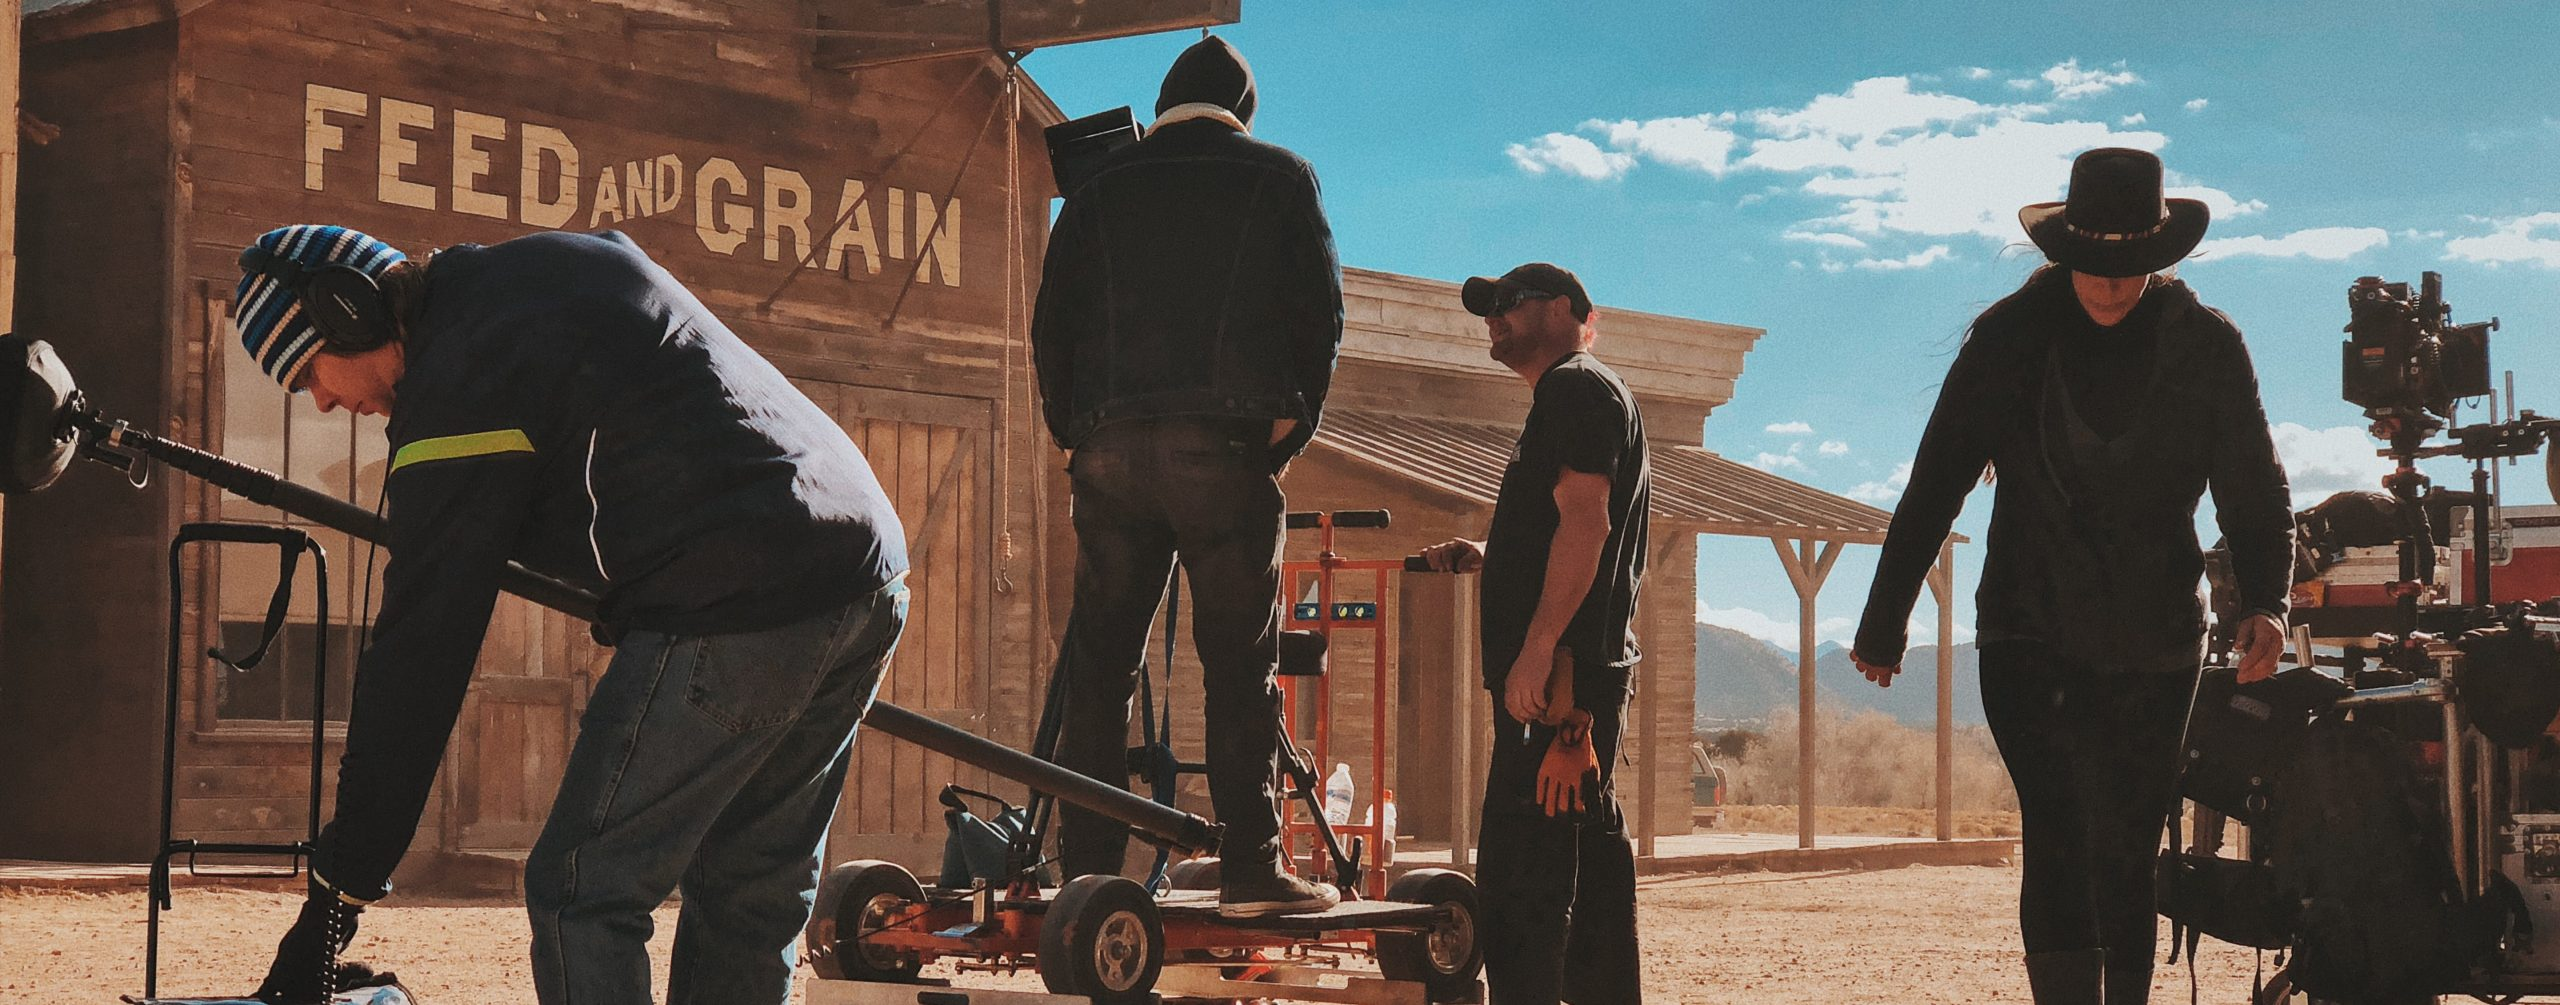 film crew with equipment in front of an old western building